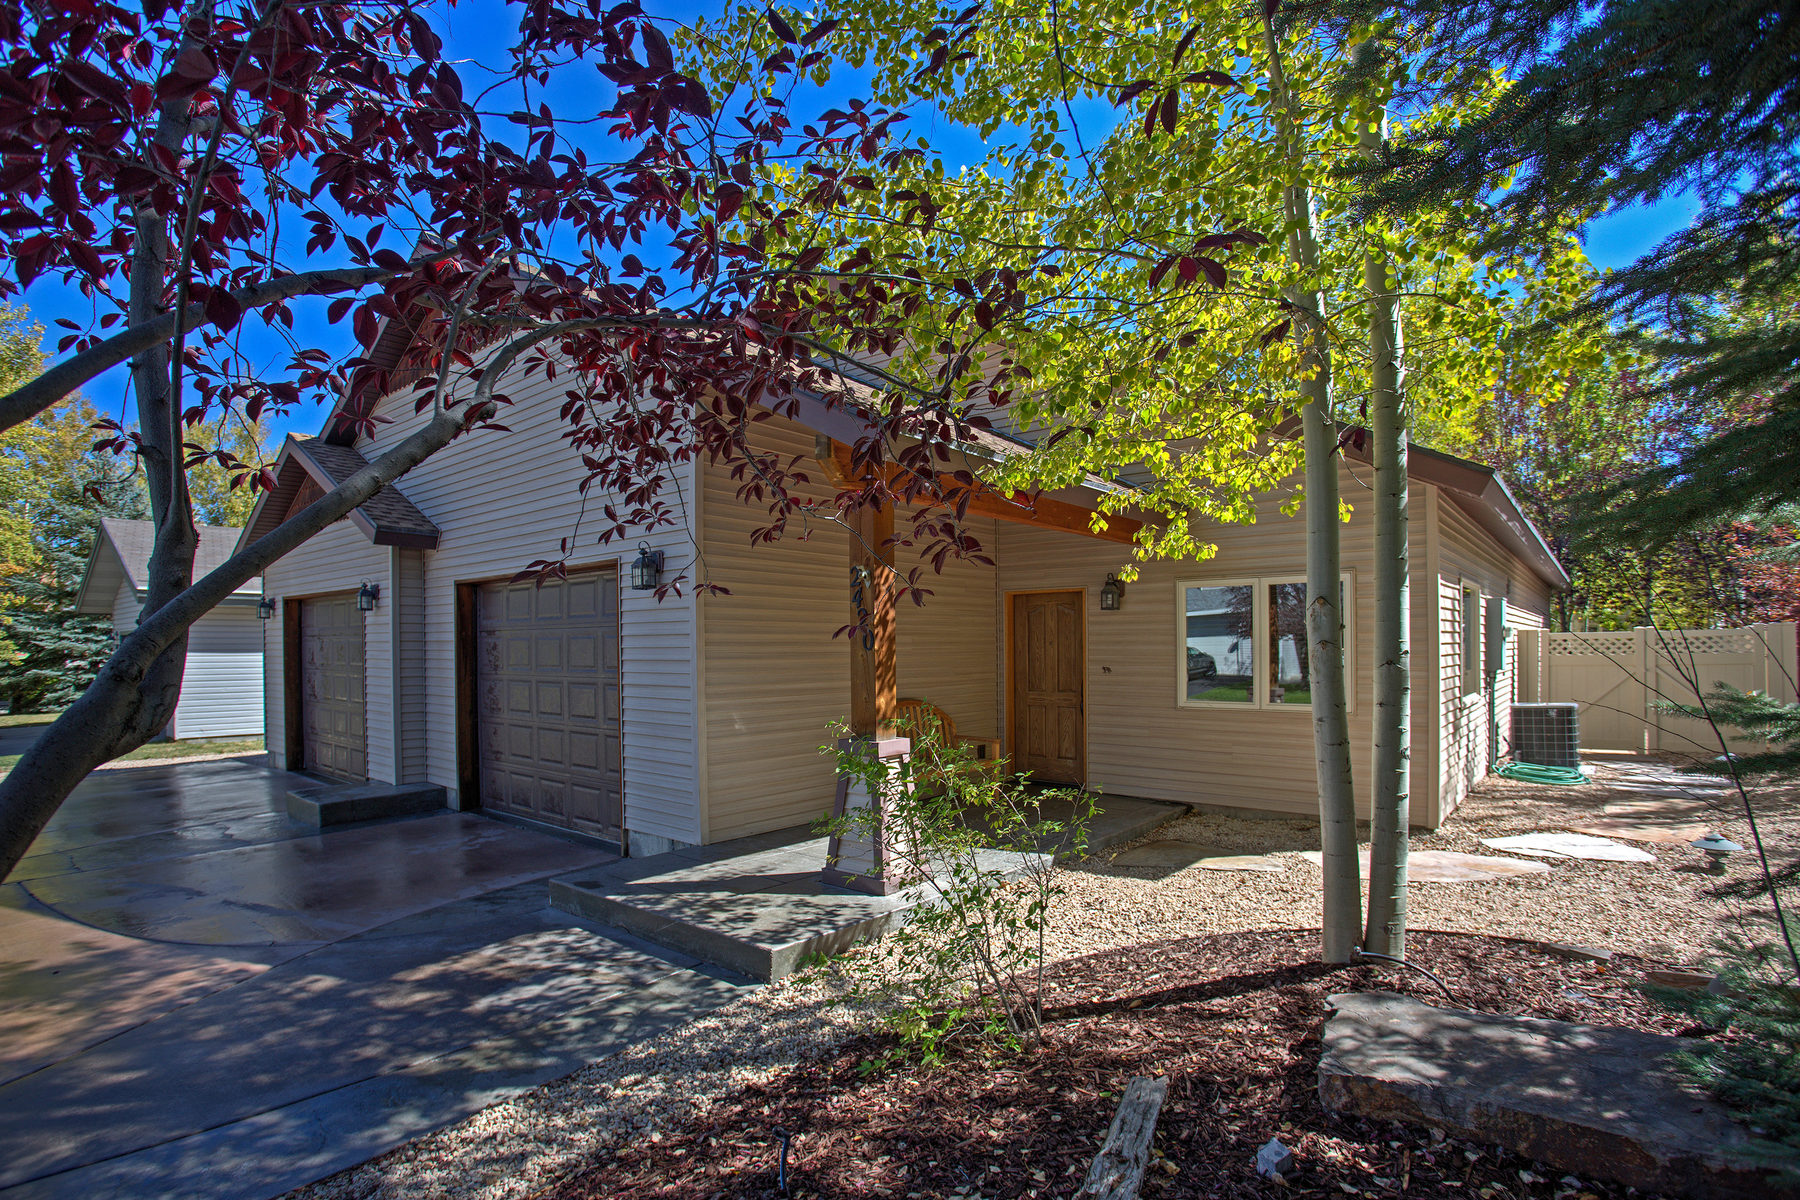 Single Family Home for Sale at Comfortable Rambler with all of the extra bonuses in Prospector! 2420 Sidewinder Dr Park City, Utah 84060 United States